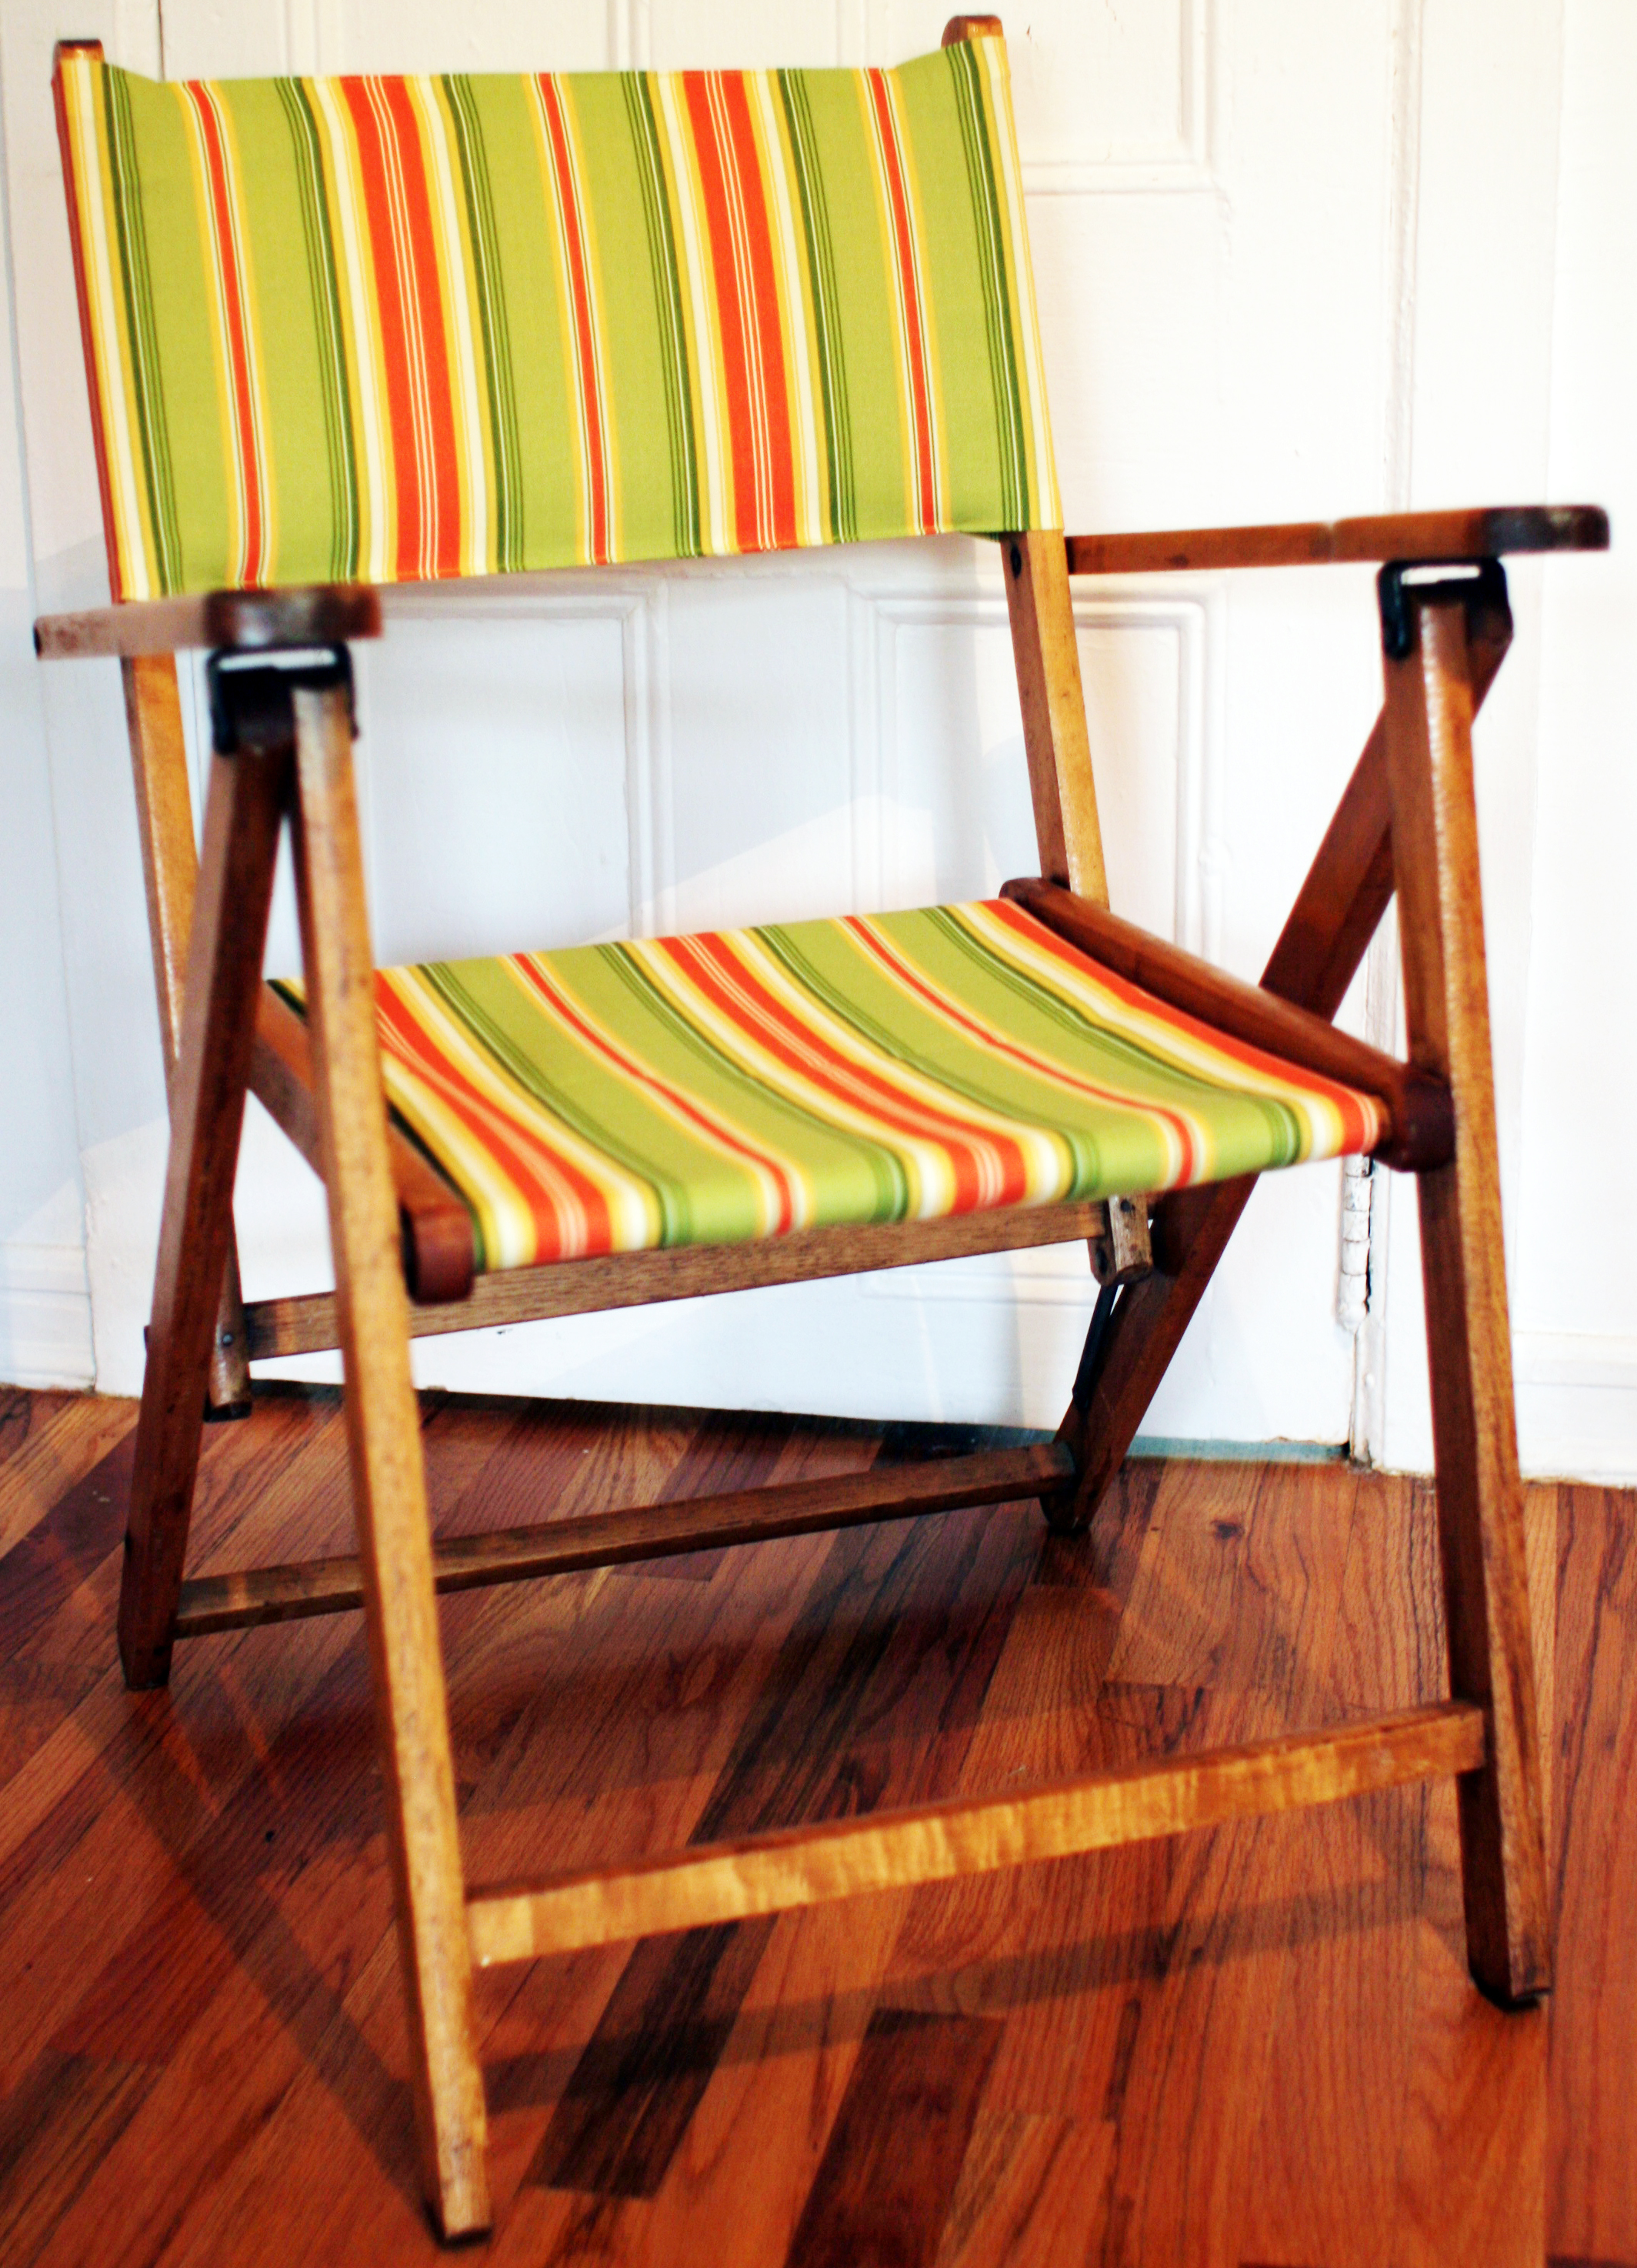 Diy Beach Chair Domesticspace